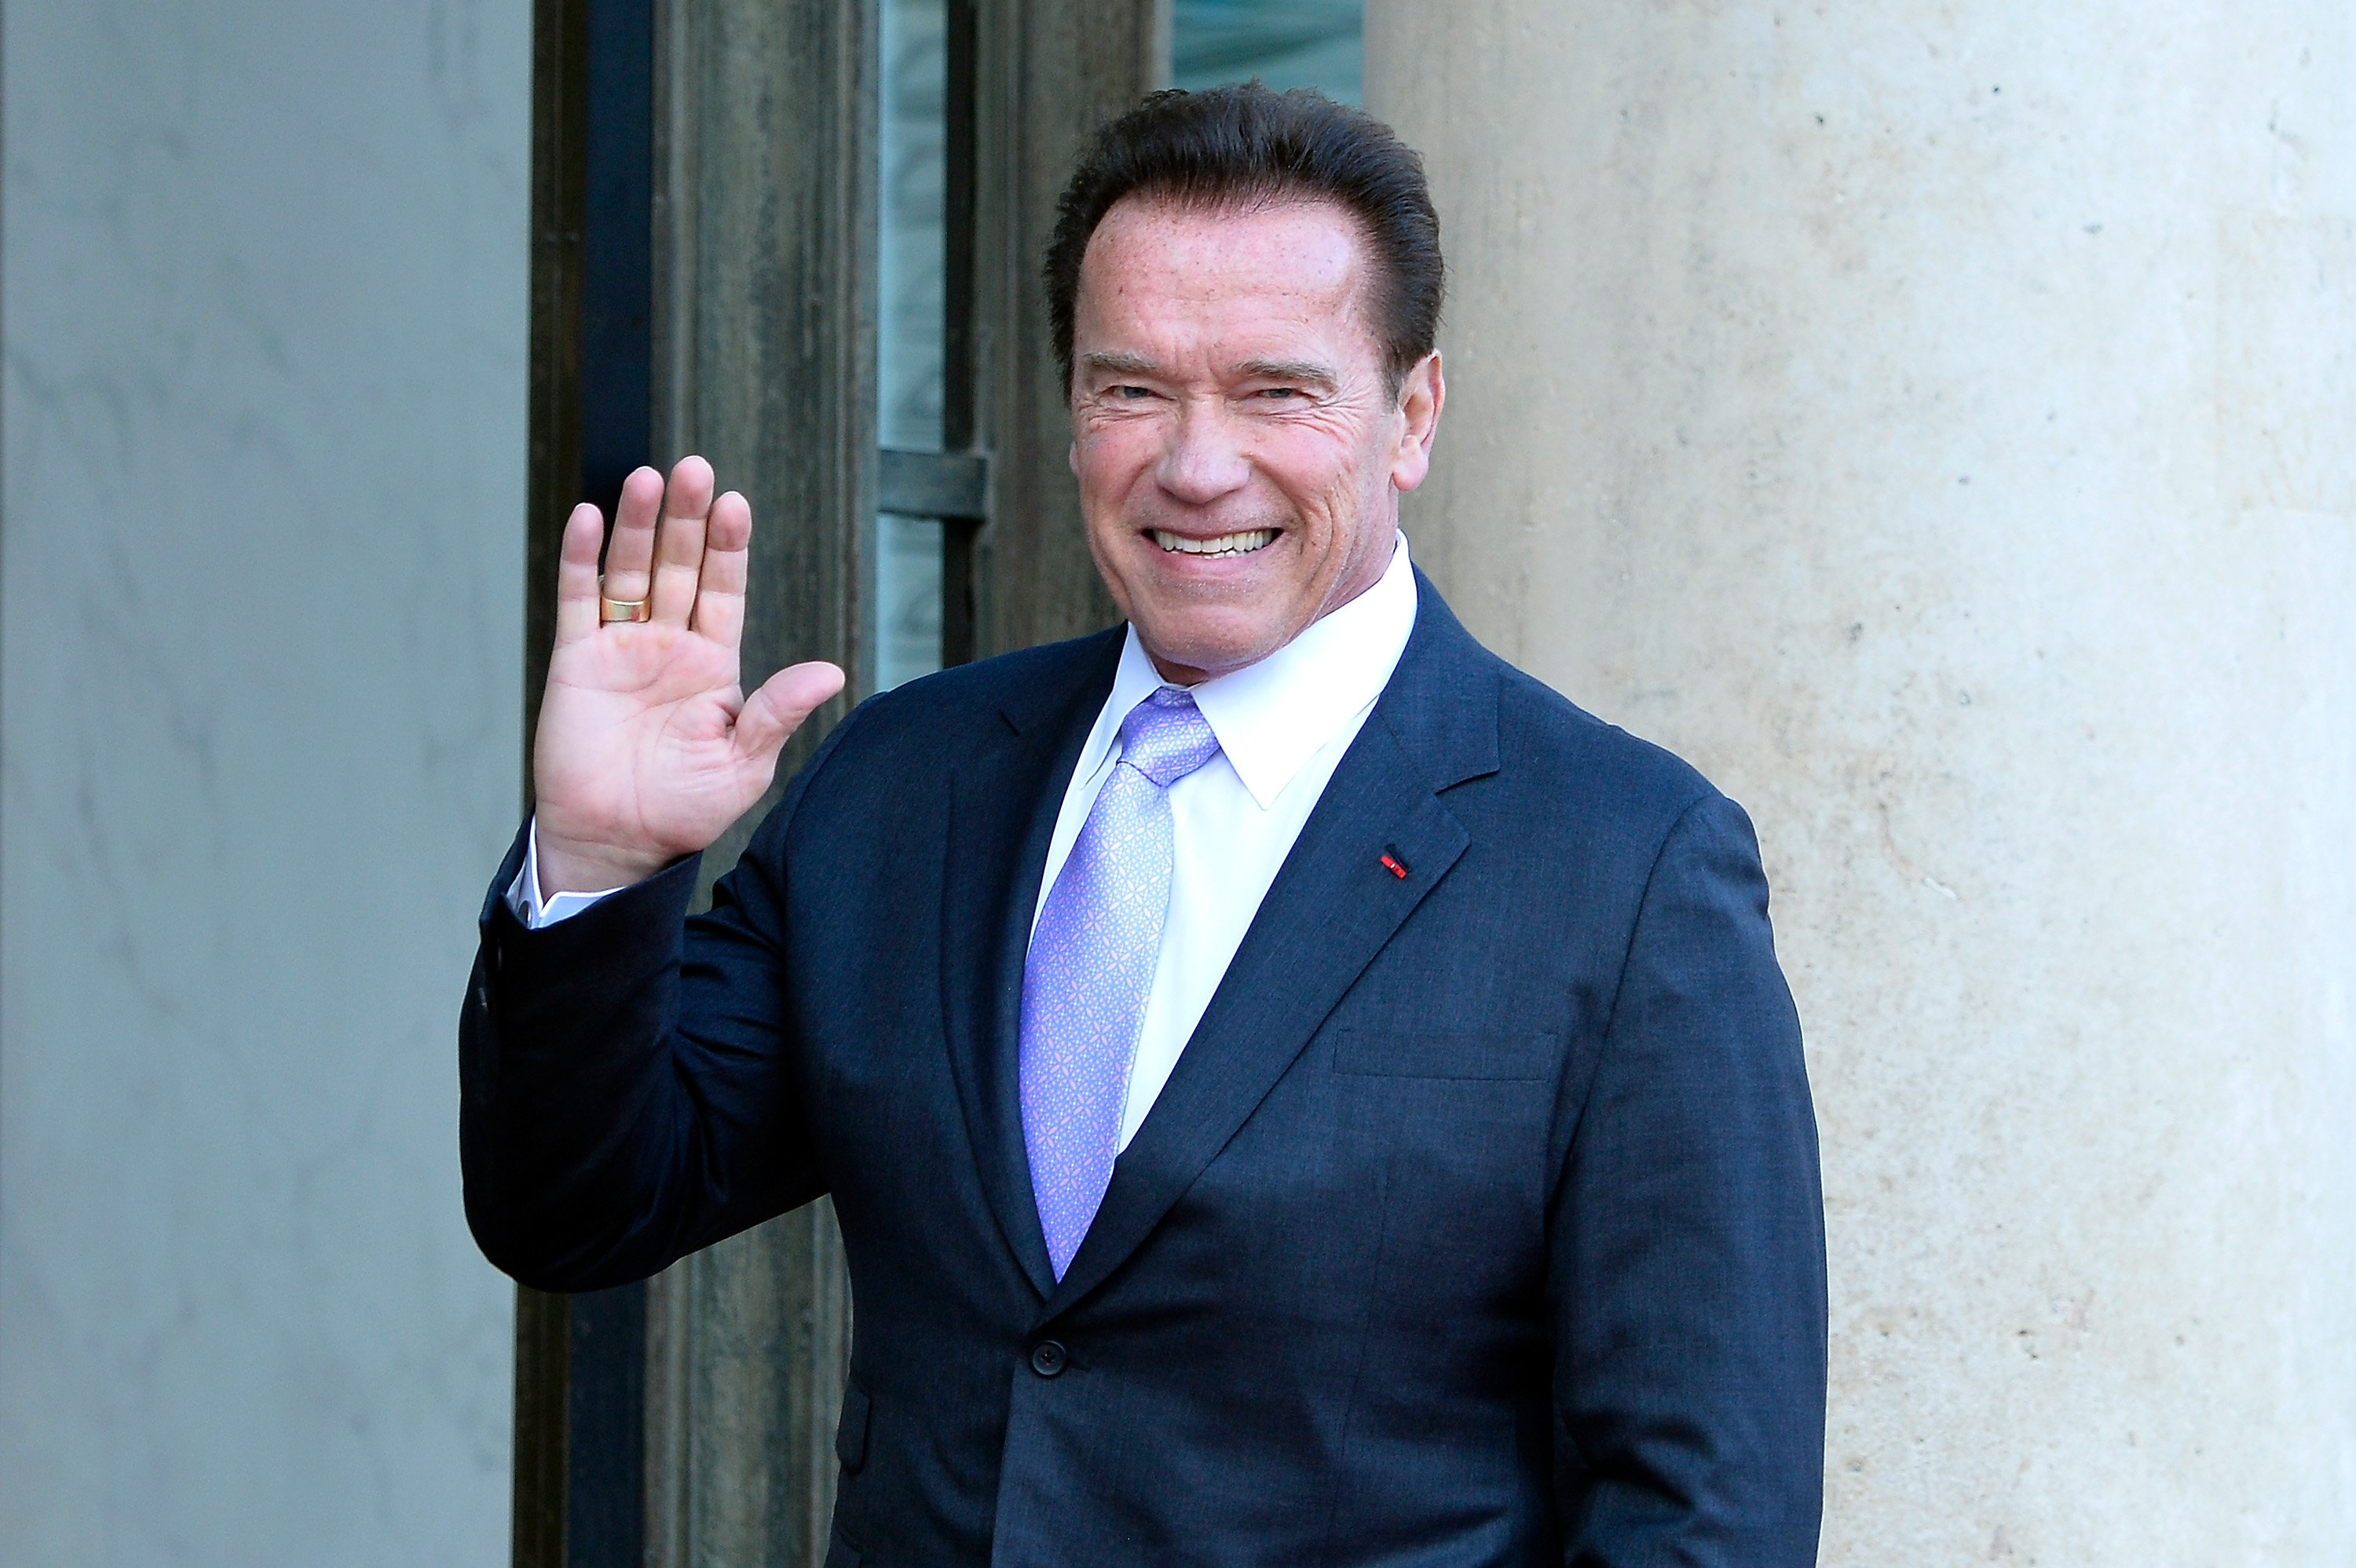 Arnold Schwarzenegger attends the One Planet Summit on December 12, 2017, in Paris, France. | Source: Getty Images.